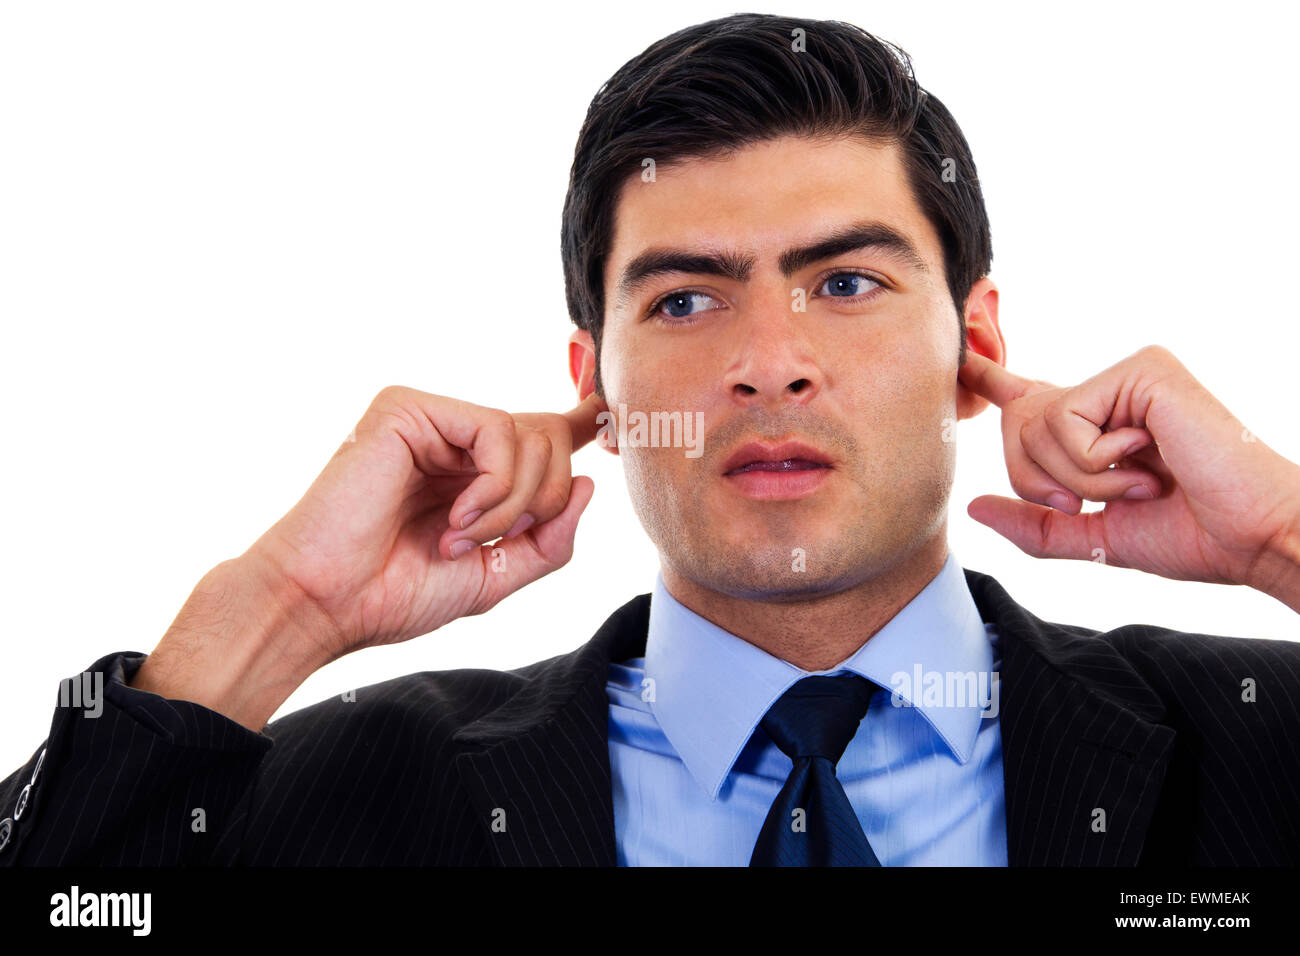 Stock image of businessman covering his ears with his hands, over white background - Stock Image